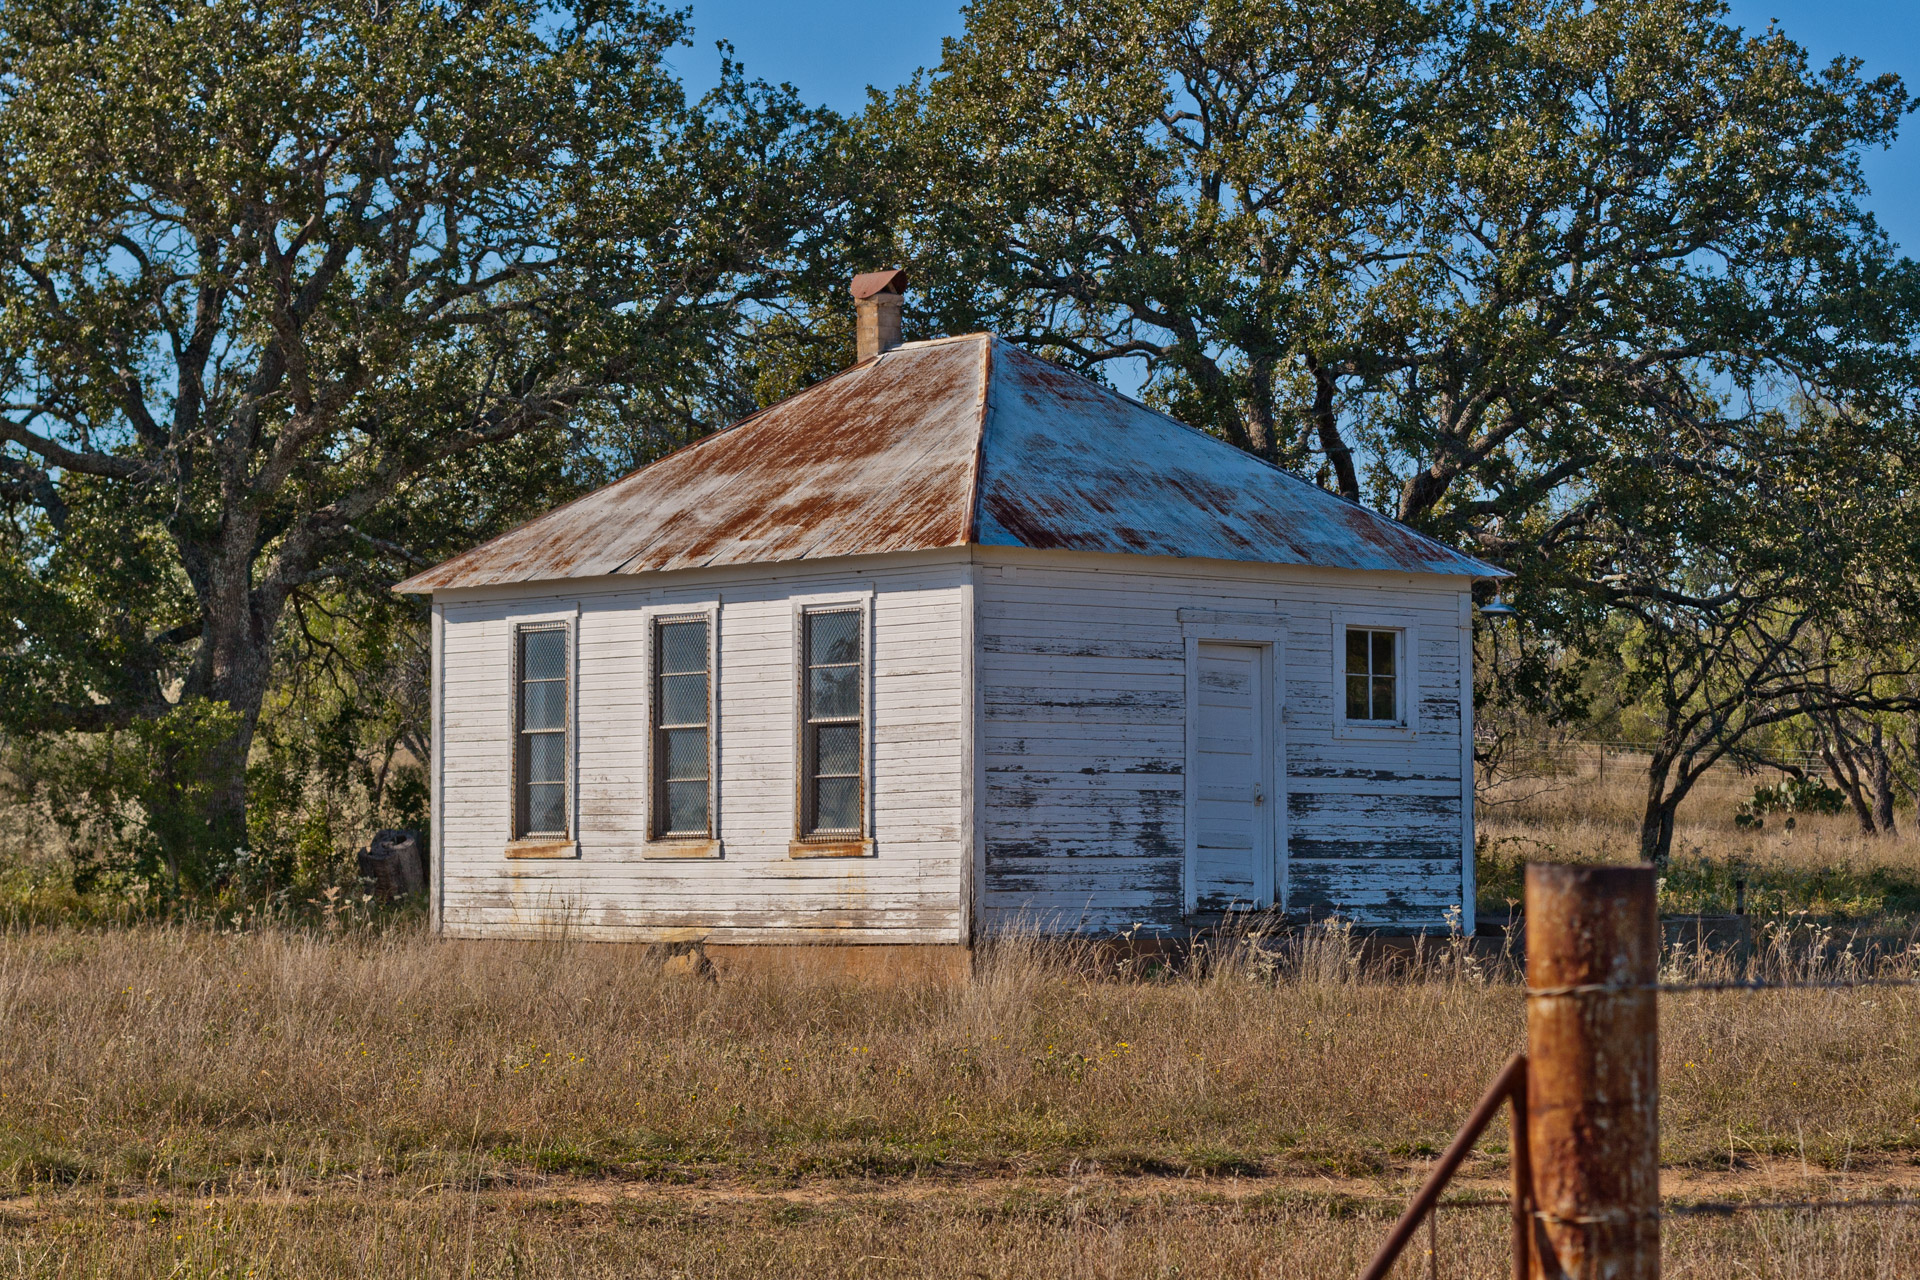 Fly Gap, Texas - The One-Room Schoolhouse (side close)